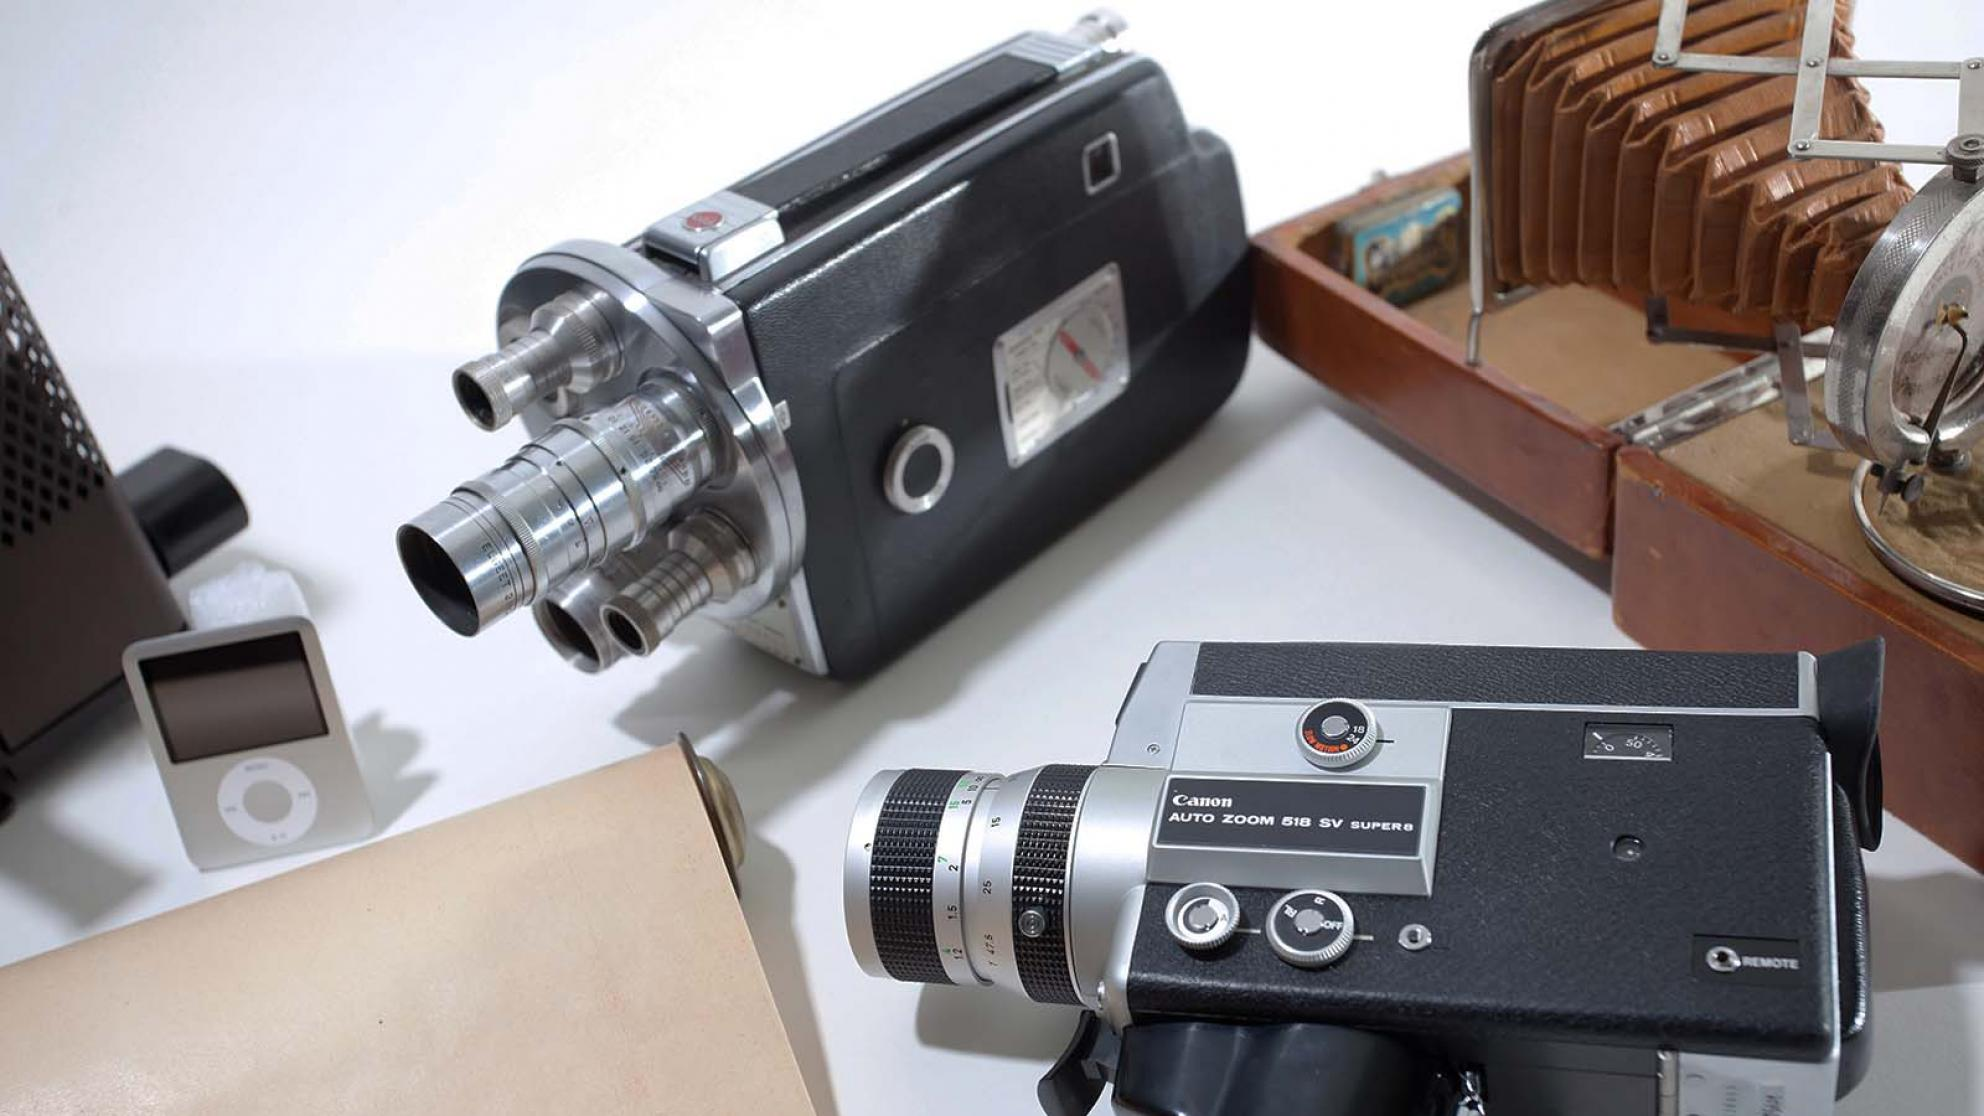 A variety of vintage camera and an ipod are displayed